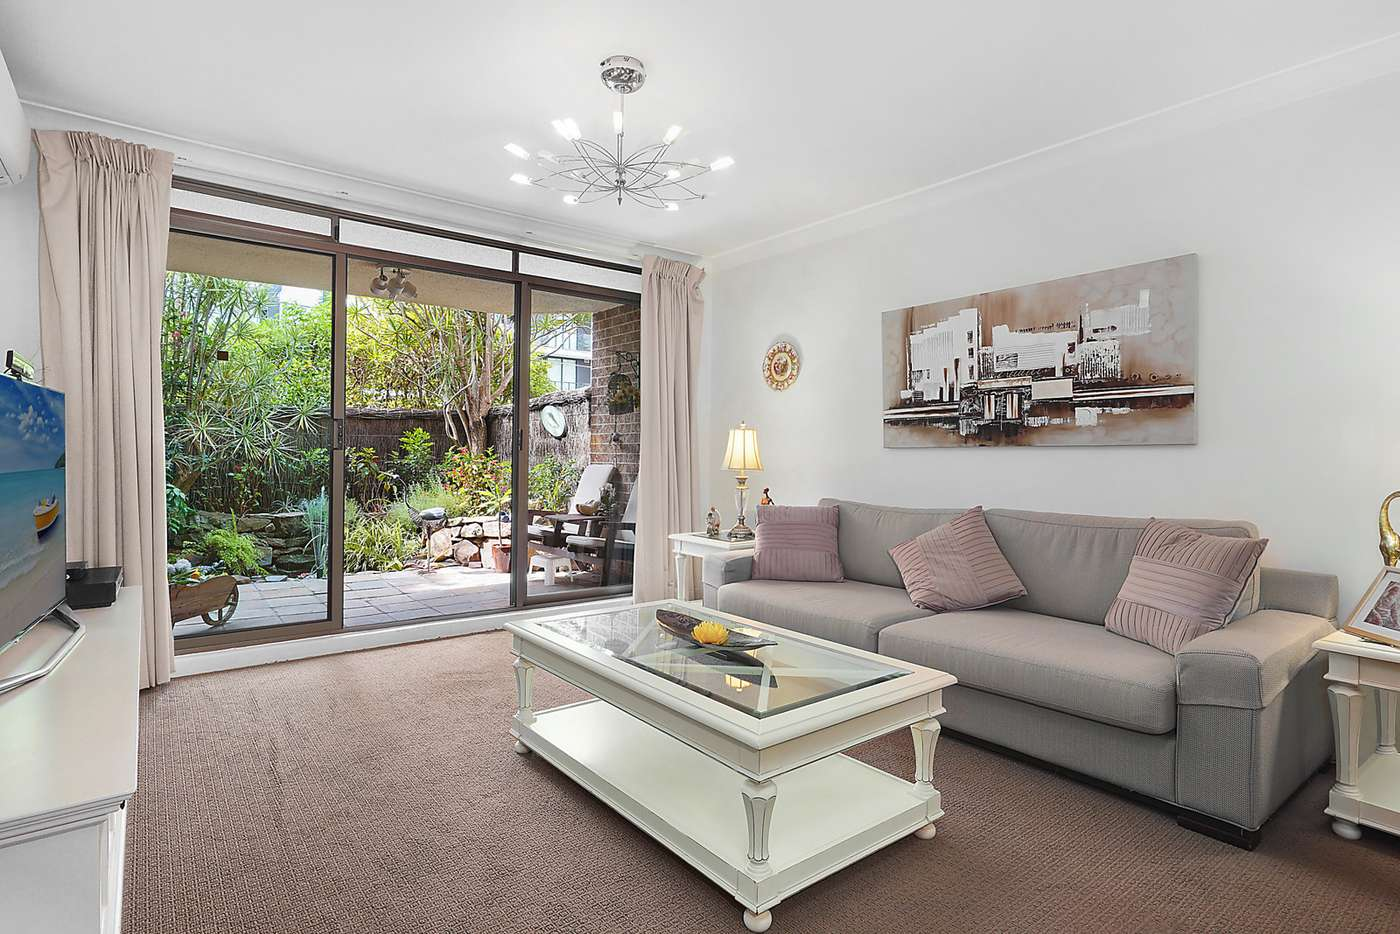 Main view of Homely apartment listing, 10/19 Carlingford Road, Epping NSW 2121